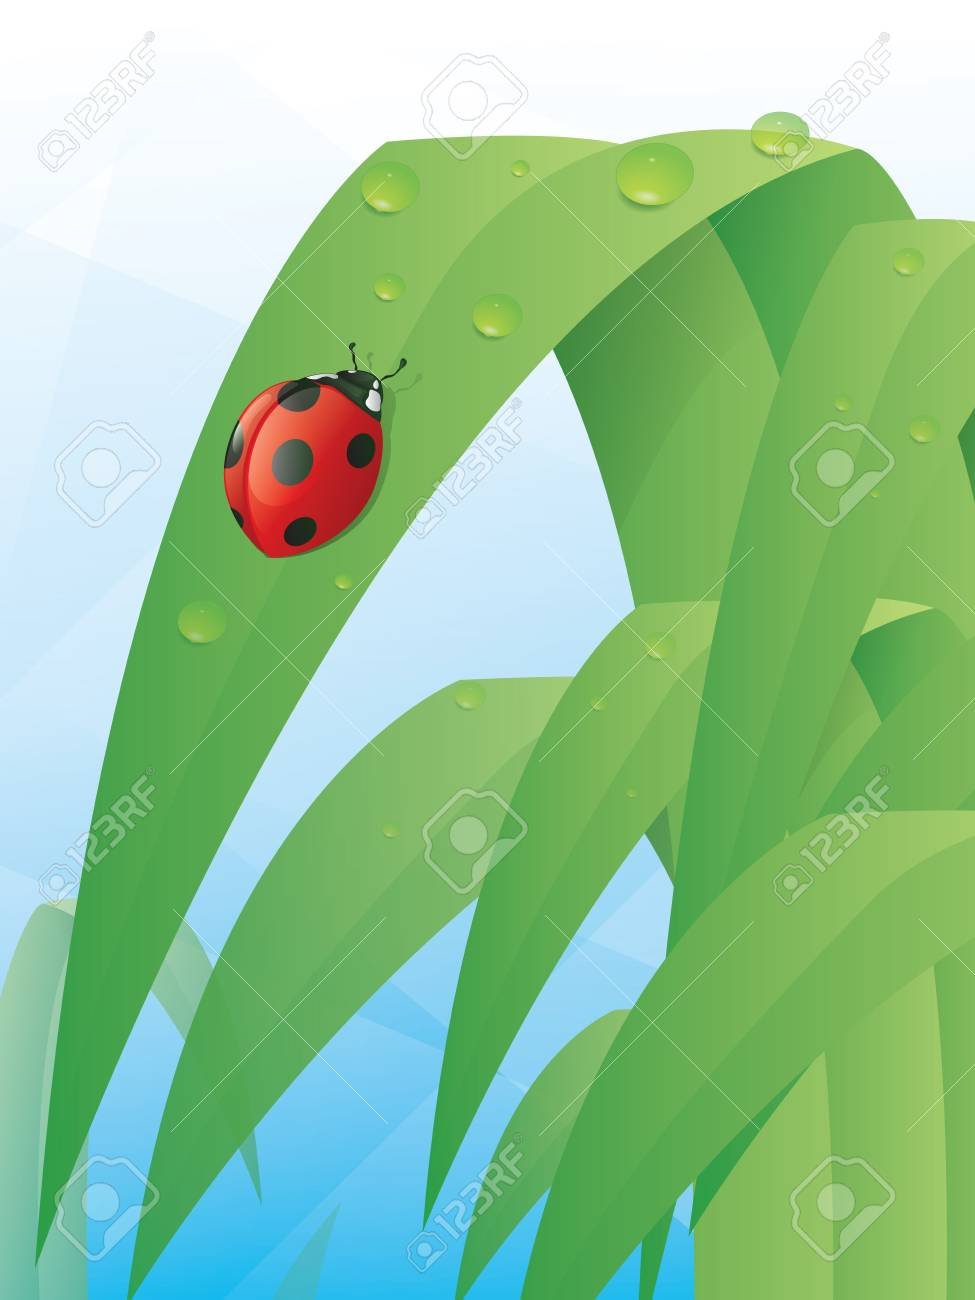 Ladybug on a Leaf Stock Vector - 16674582